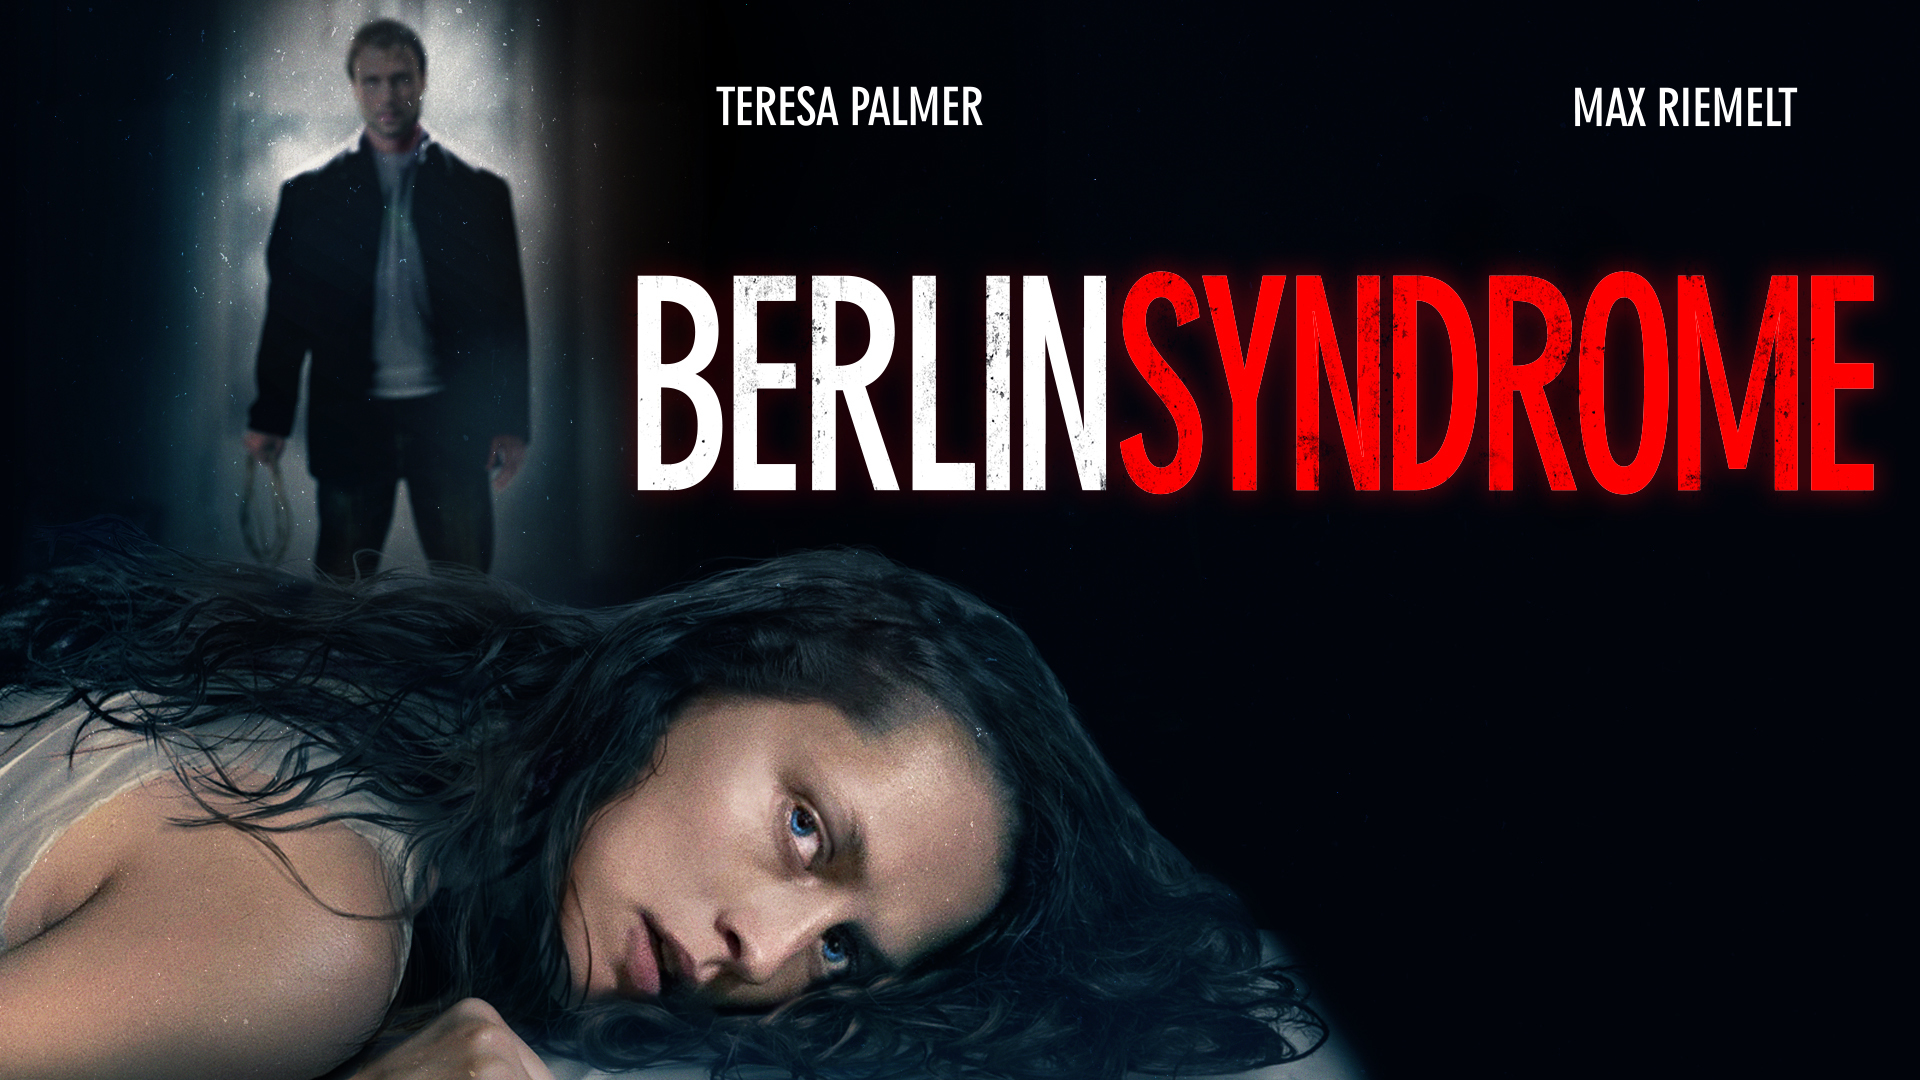 image Teresa palmer in berlin syndrome